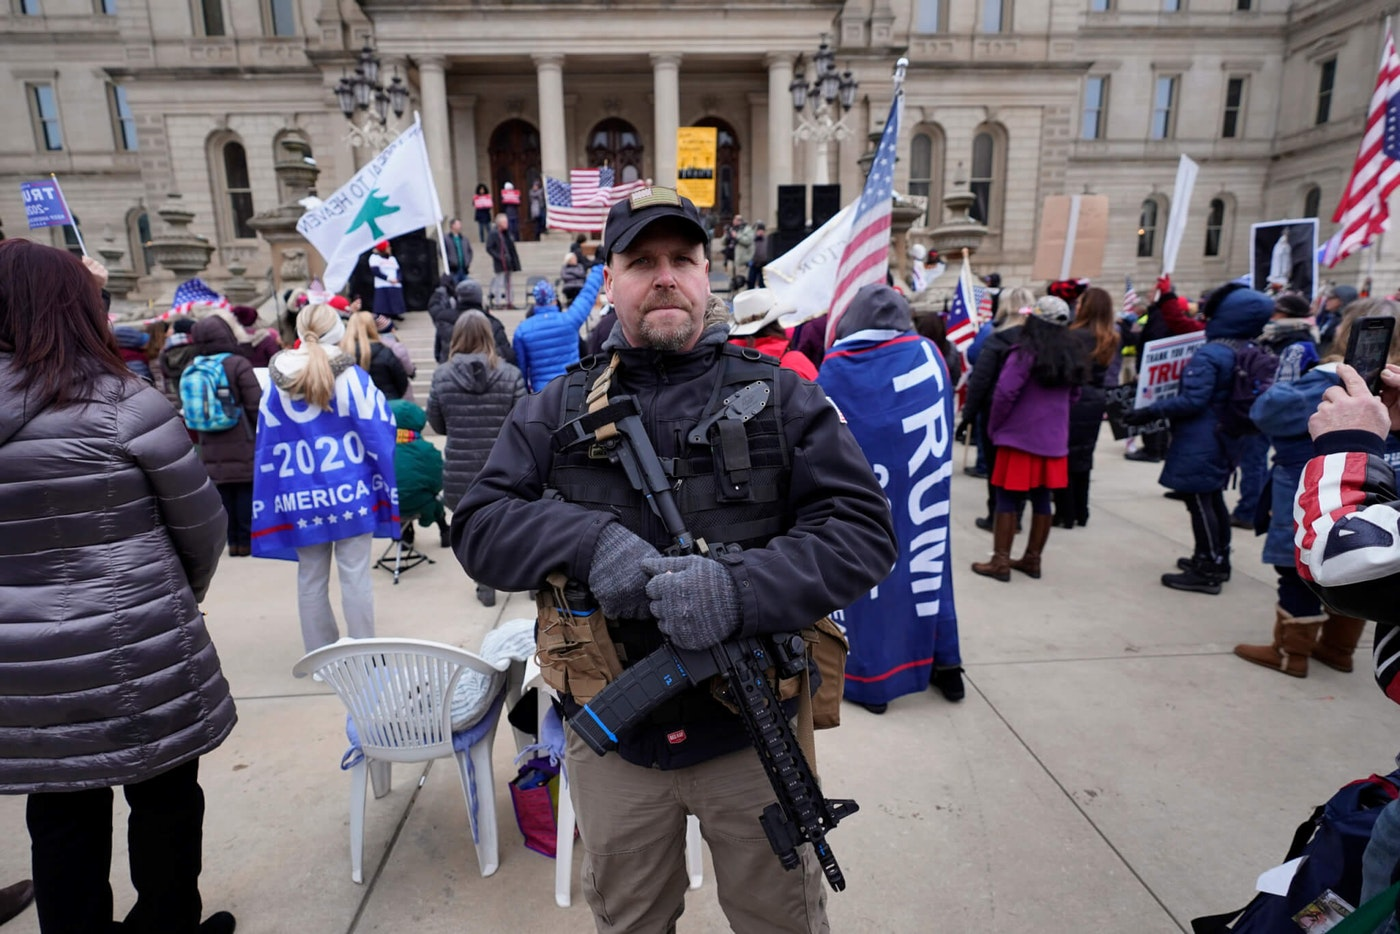 A man carries a rifle during a rally in support of President Donald Trump at the state capitol in Lansing, Mich., Wednesday, Jan. 6, 2021. (AP Photo/Paul Sancya)